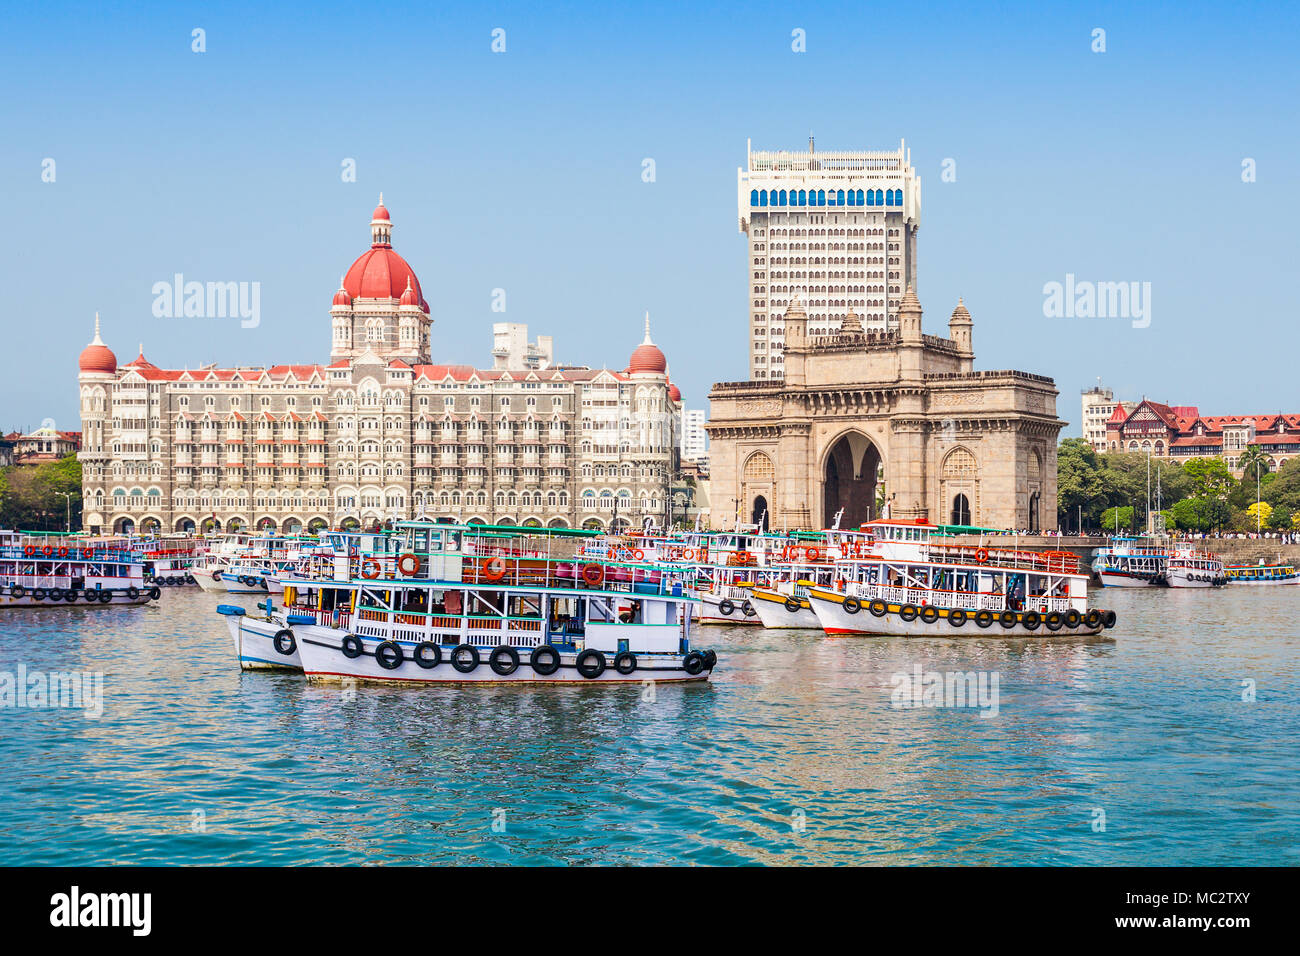 Il Gateway of India e barche come visto dal porto di Mumbai in Mumbai, India Immagini Stock